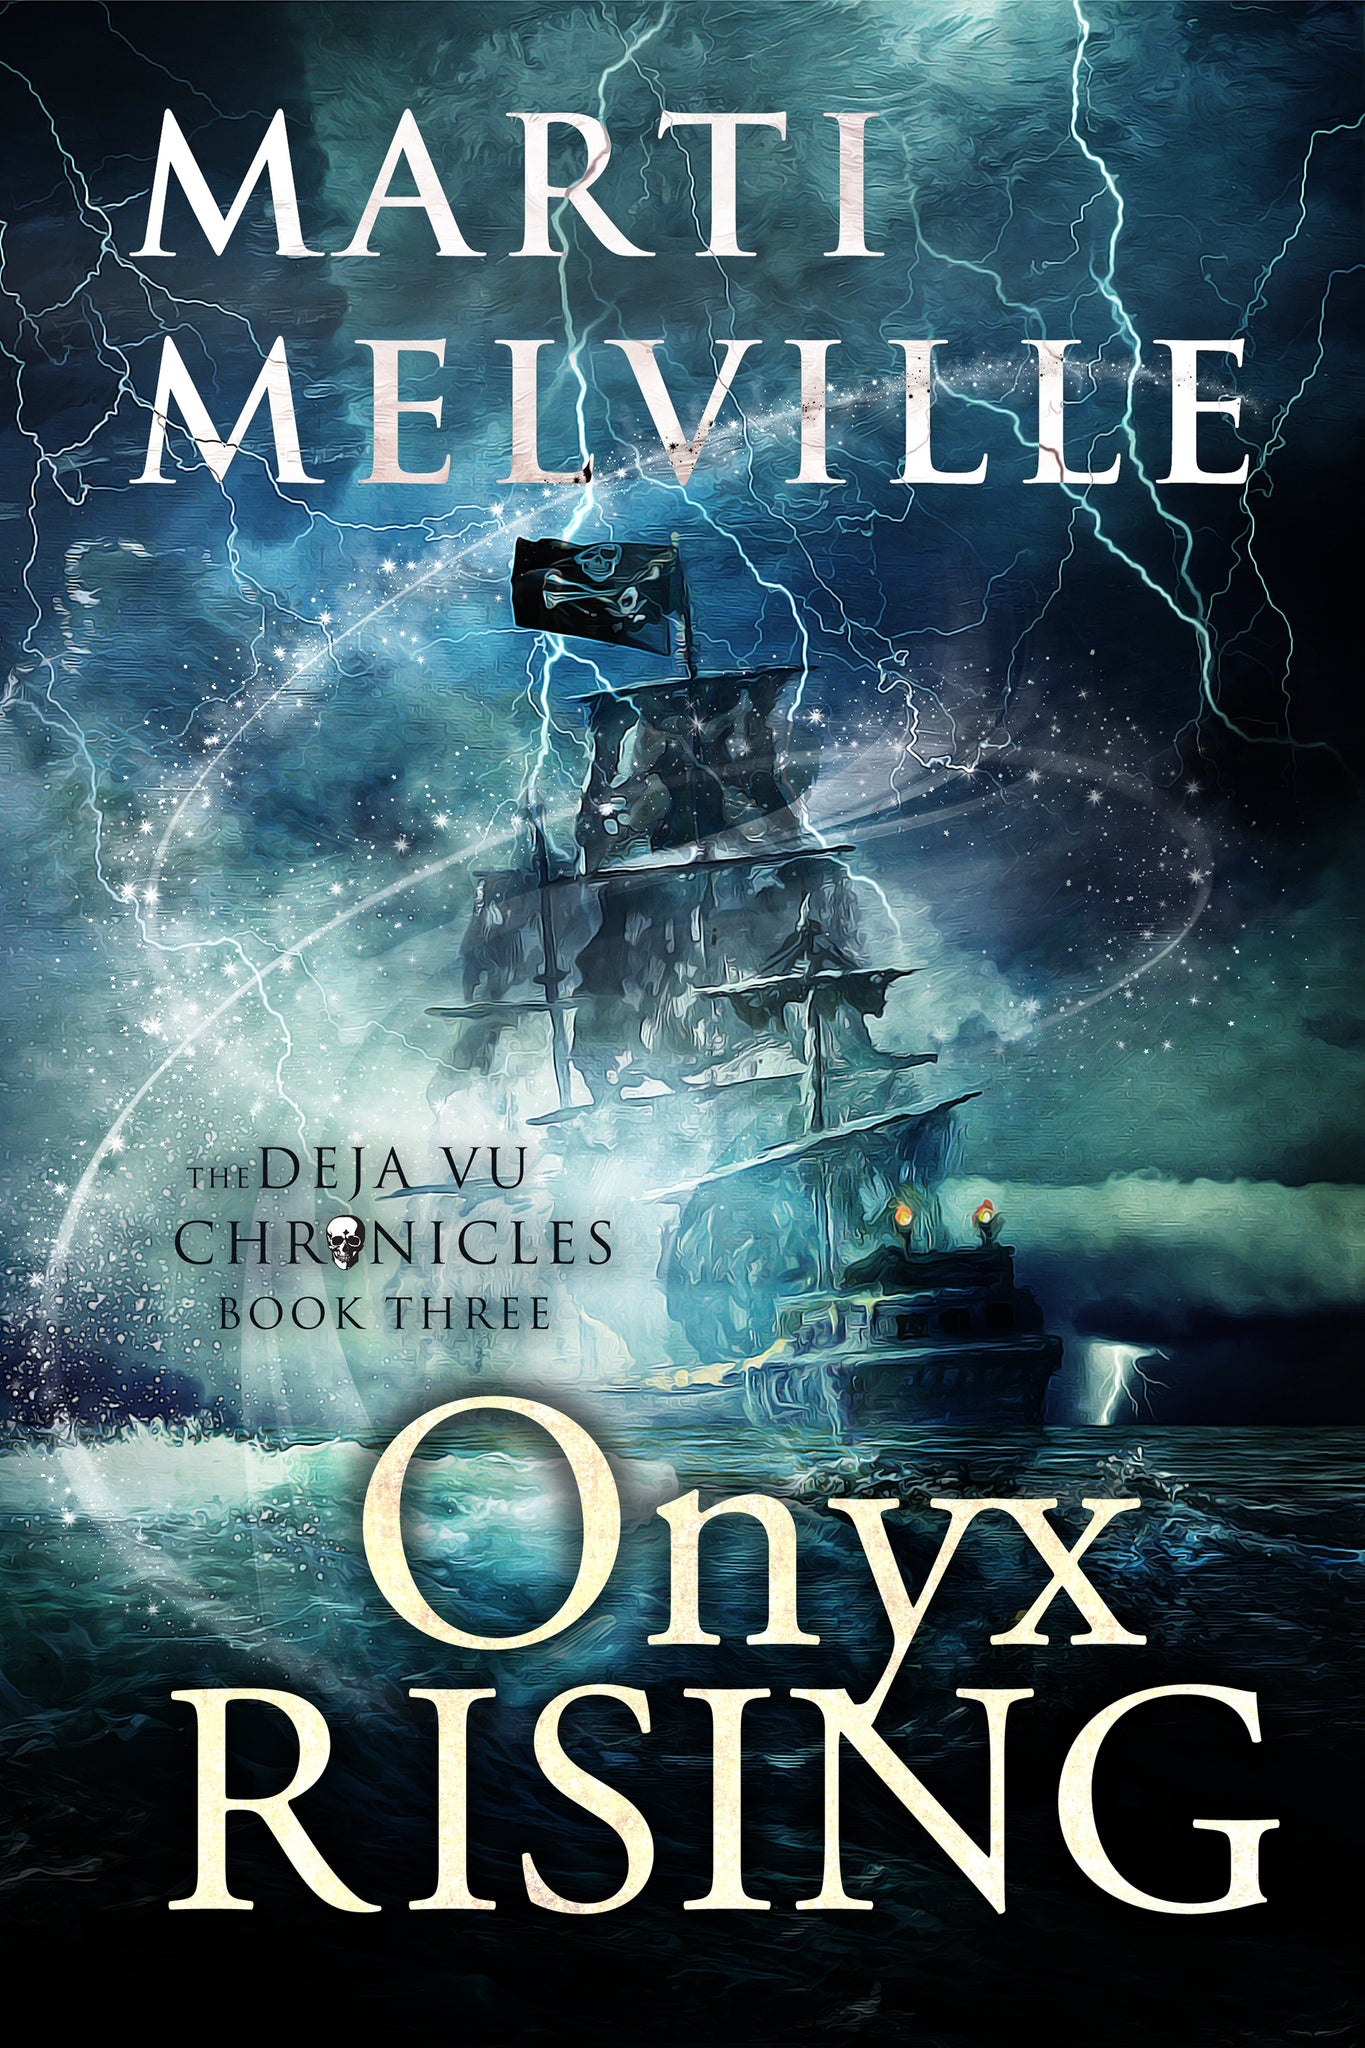 Onyx Rising (book 3 - The Deja vu Chronicles)